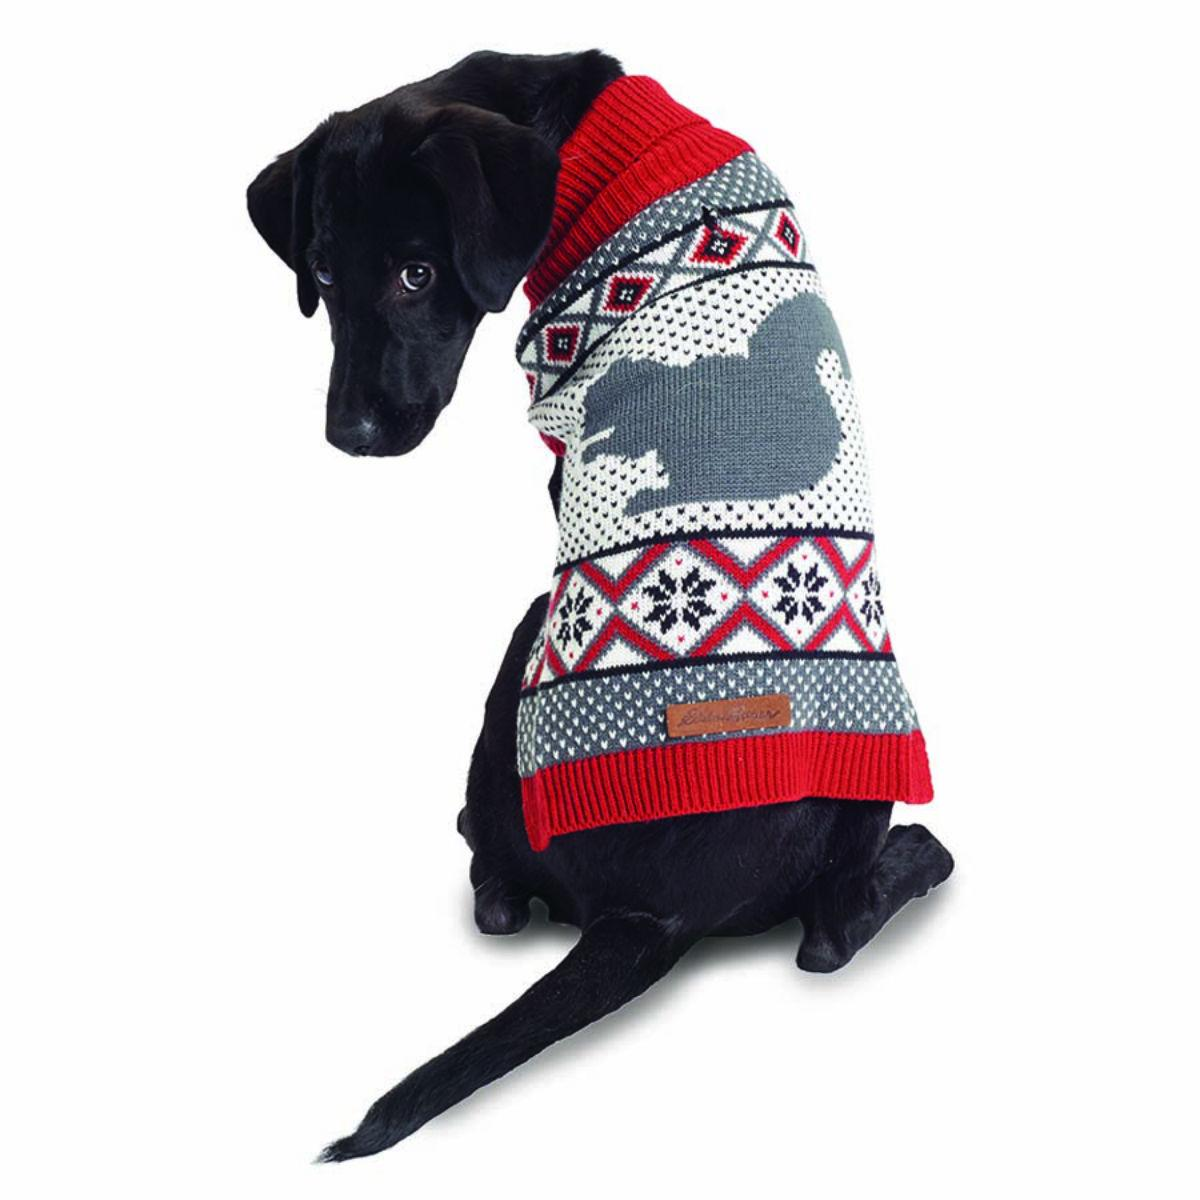 Eddie Bauer Woodland Fair Isle Dog Sweater - Red and Gray